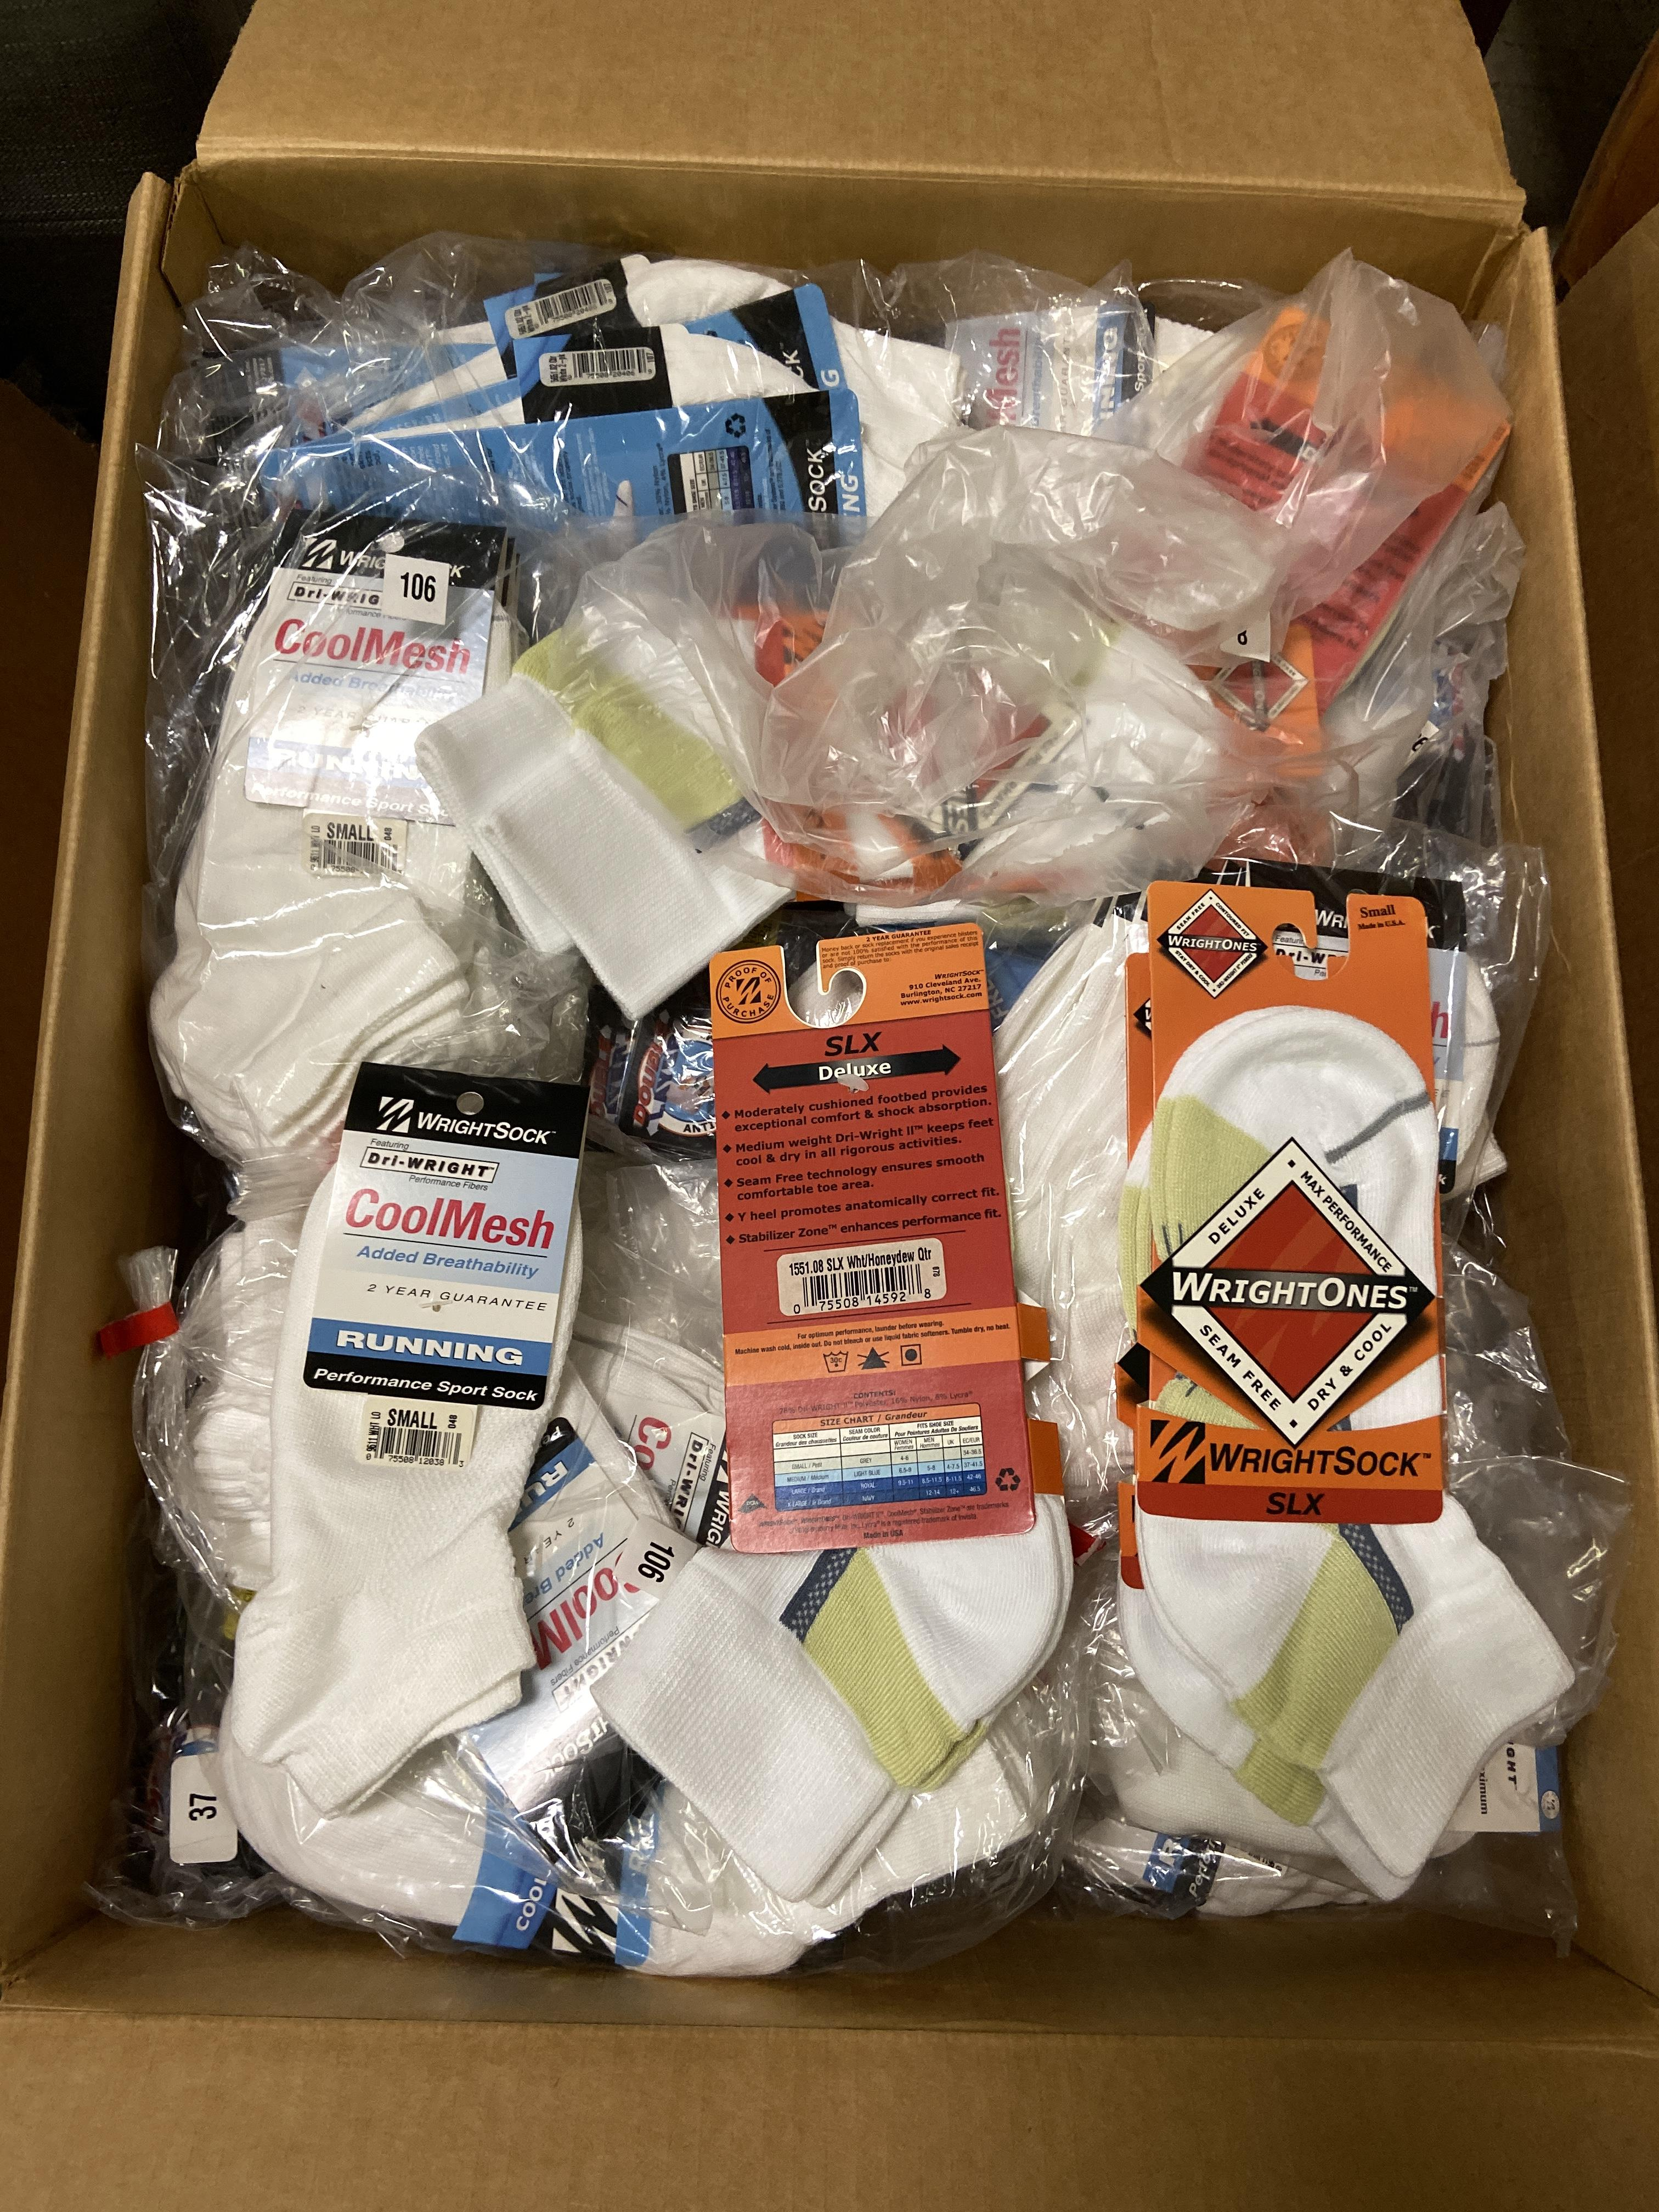 500+ packs of New Socks, Wrightsocks Various Styles, Various Colors and Styles - Image 2 of 6